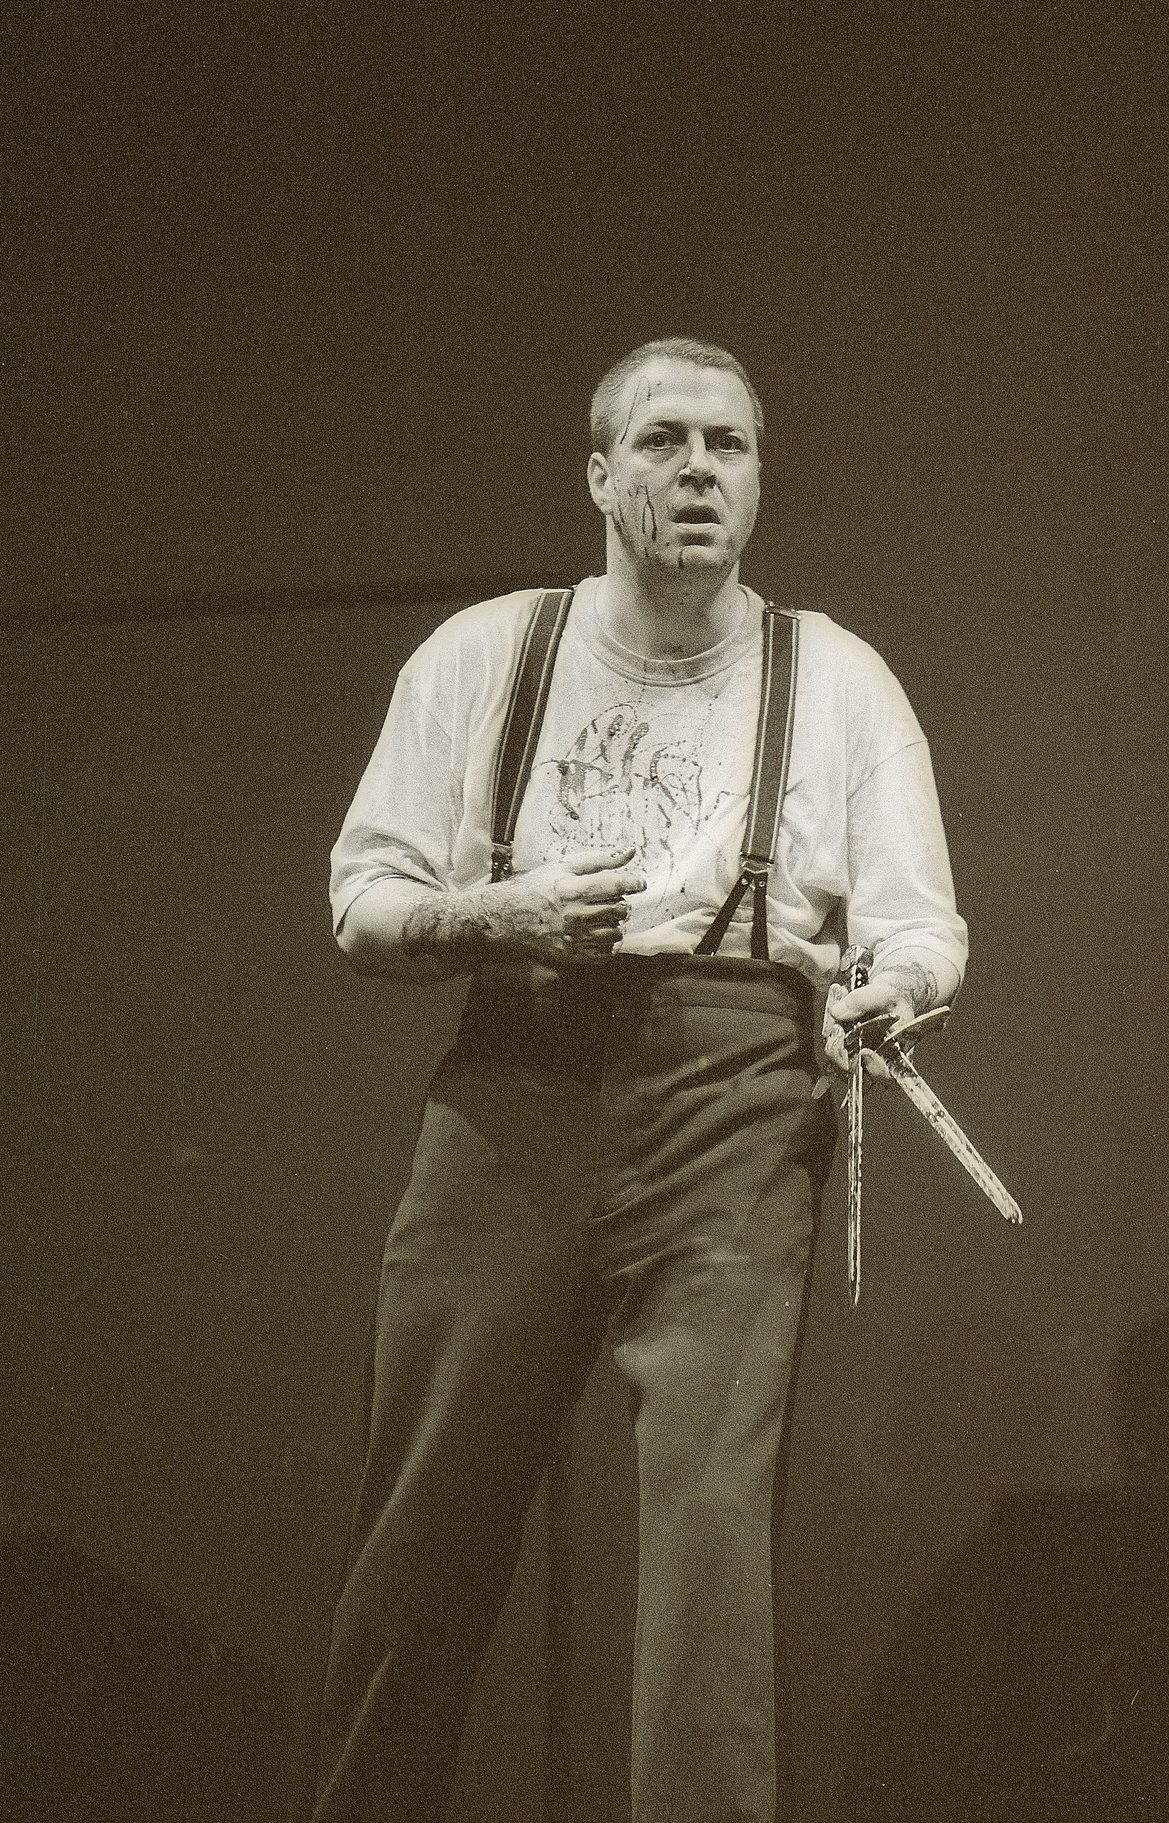 Macbeth with bloodied daggers after Duncan's murder.